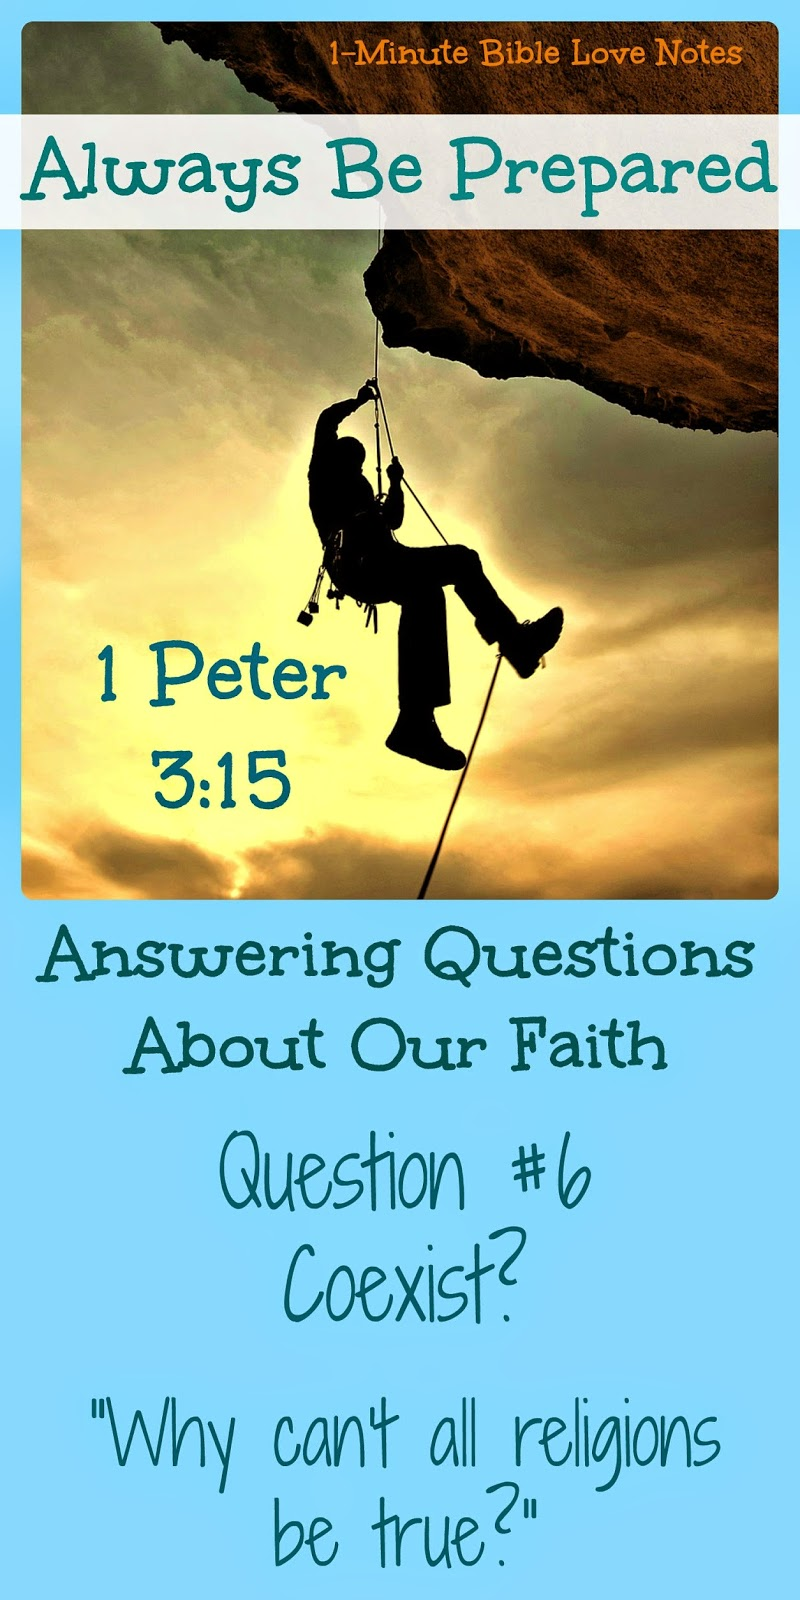 1 Peter 3:15, Questions about faith, Can all religions be true? Can all religions coexist?